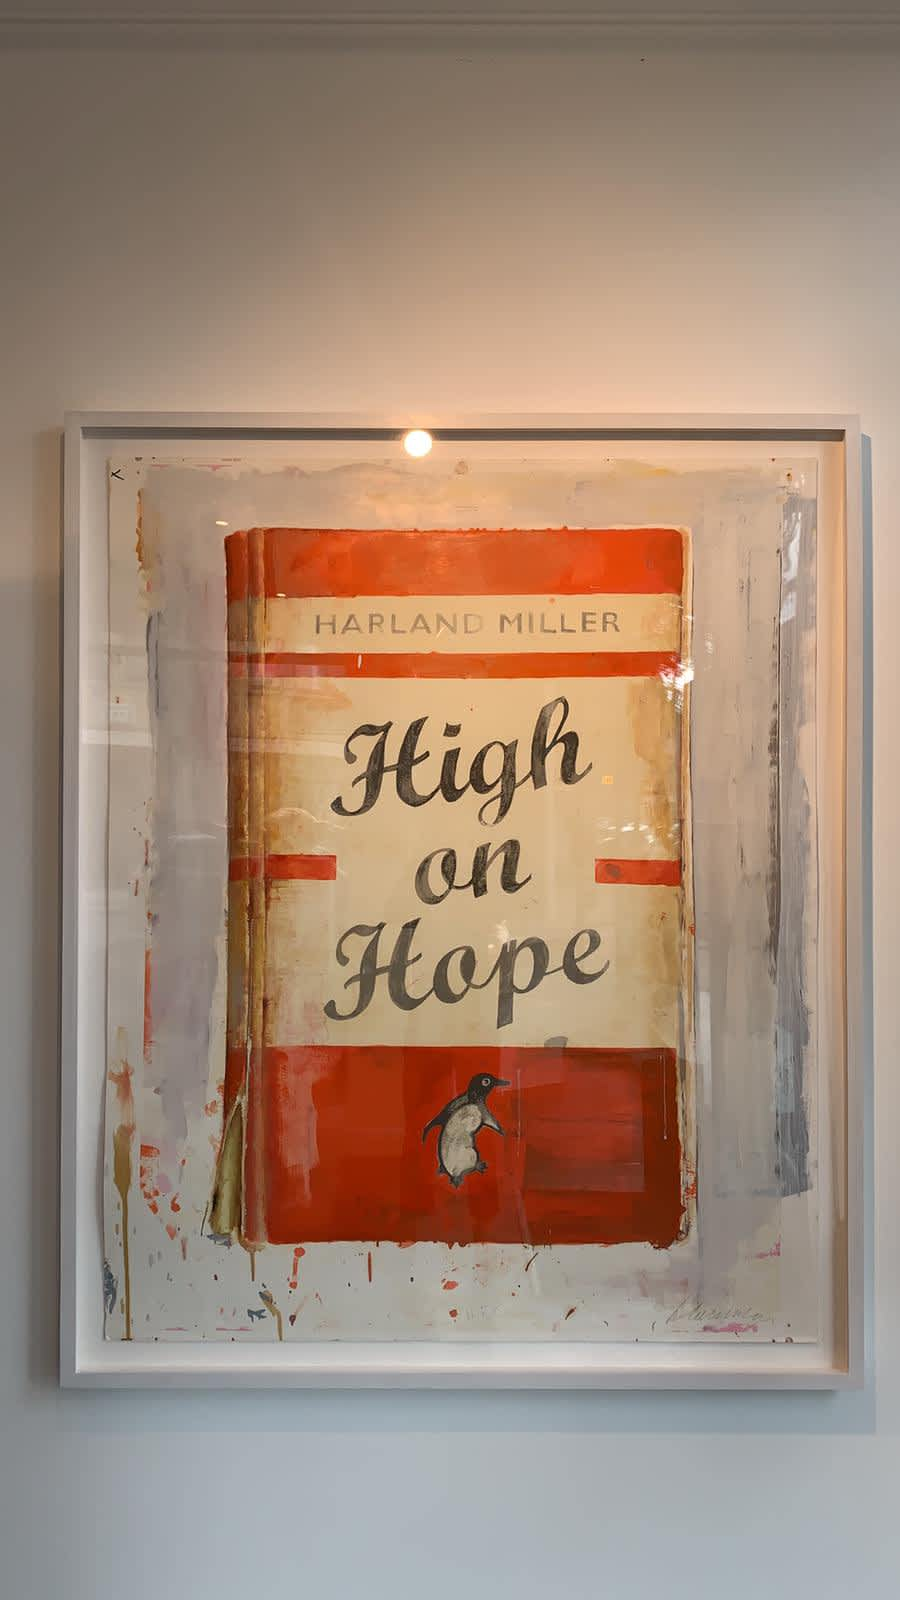 Harland Miller, High on Hope, 2019